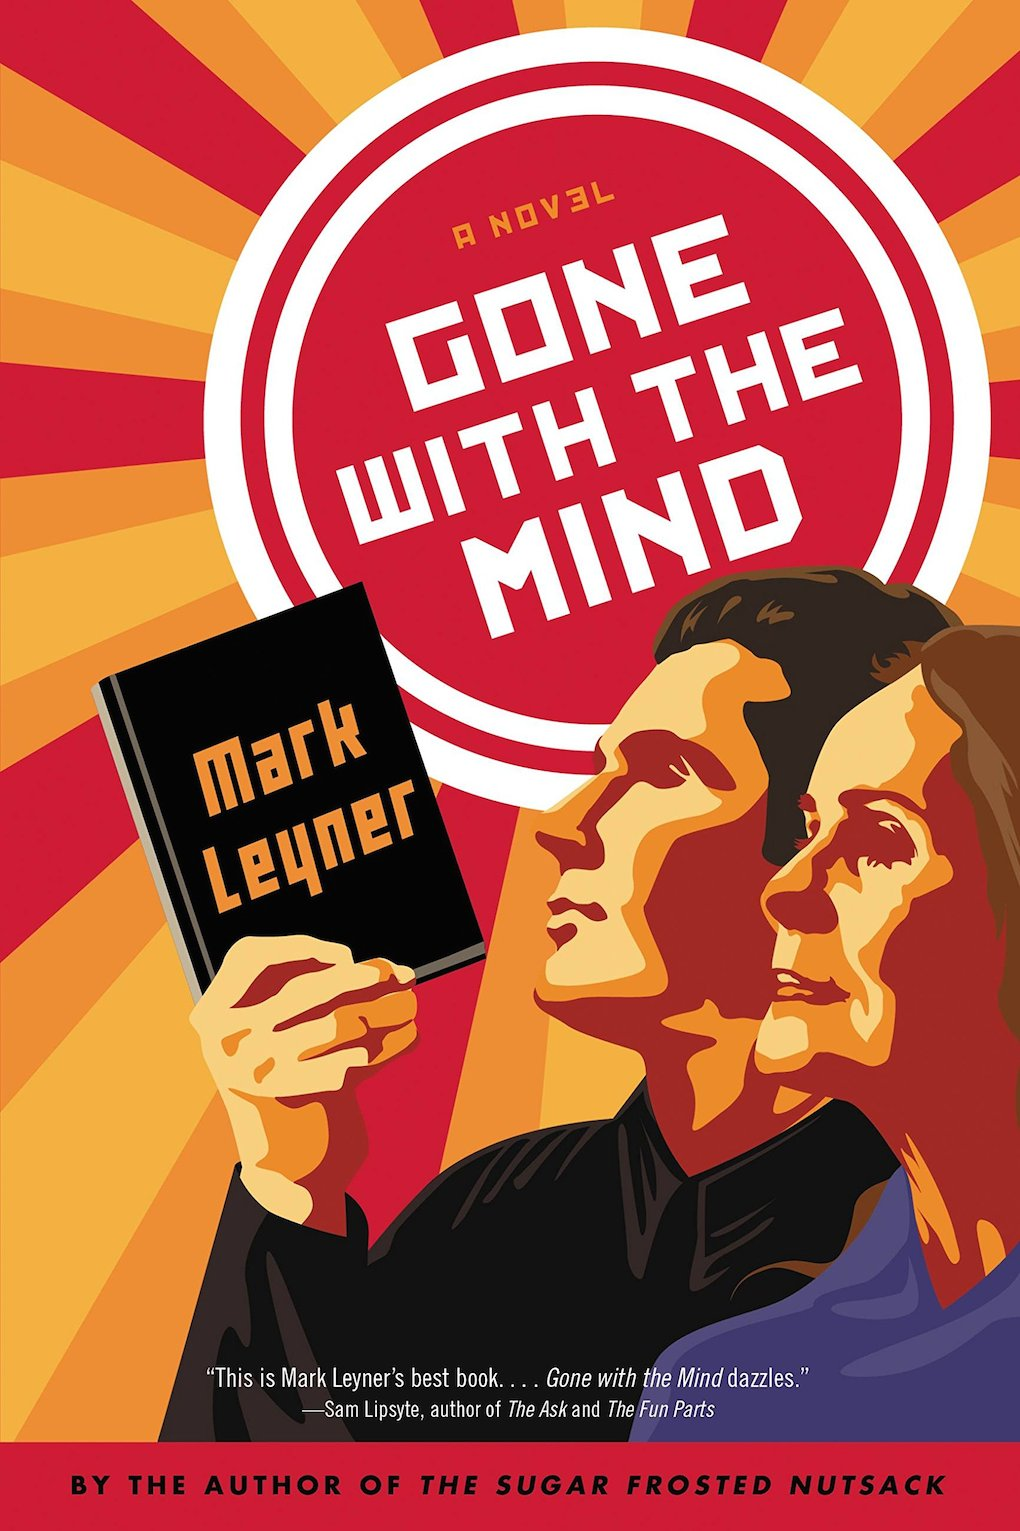 Gone with the Mind